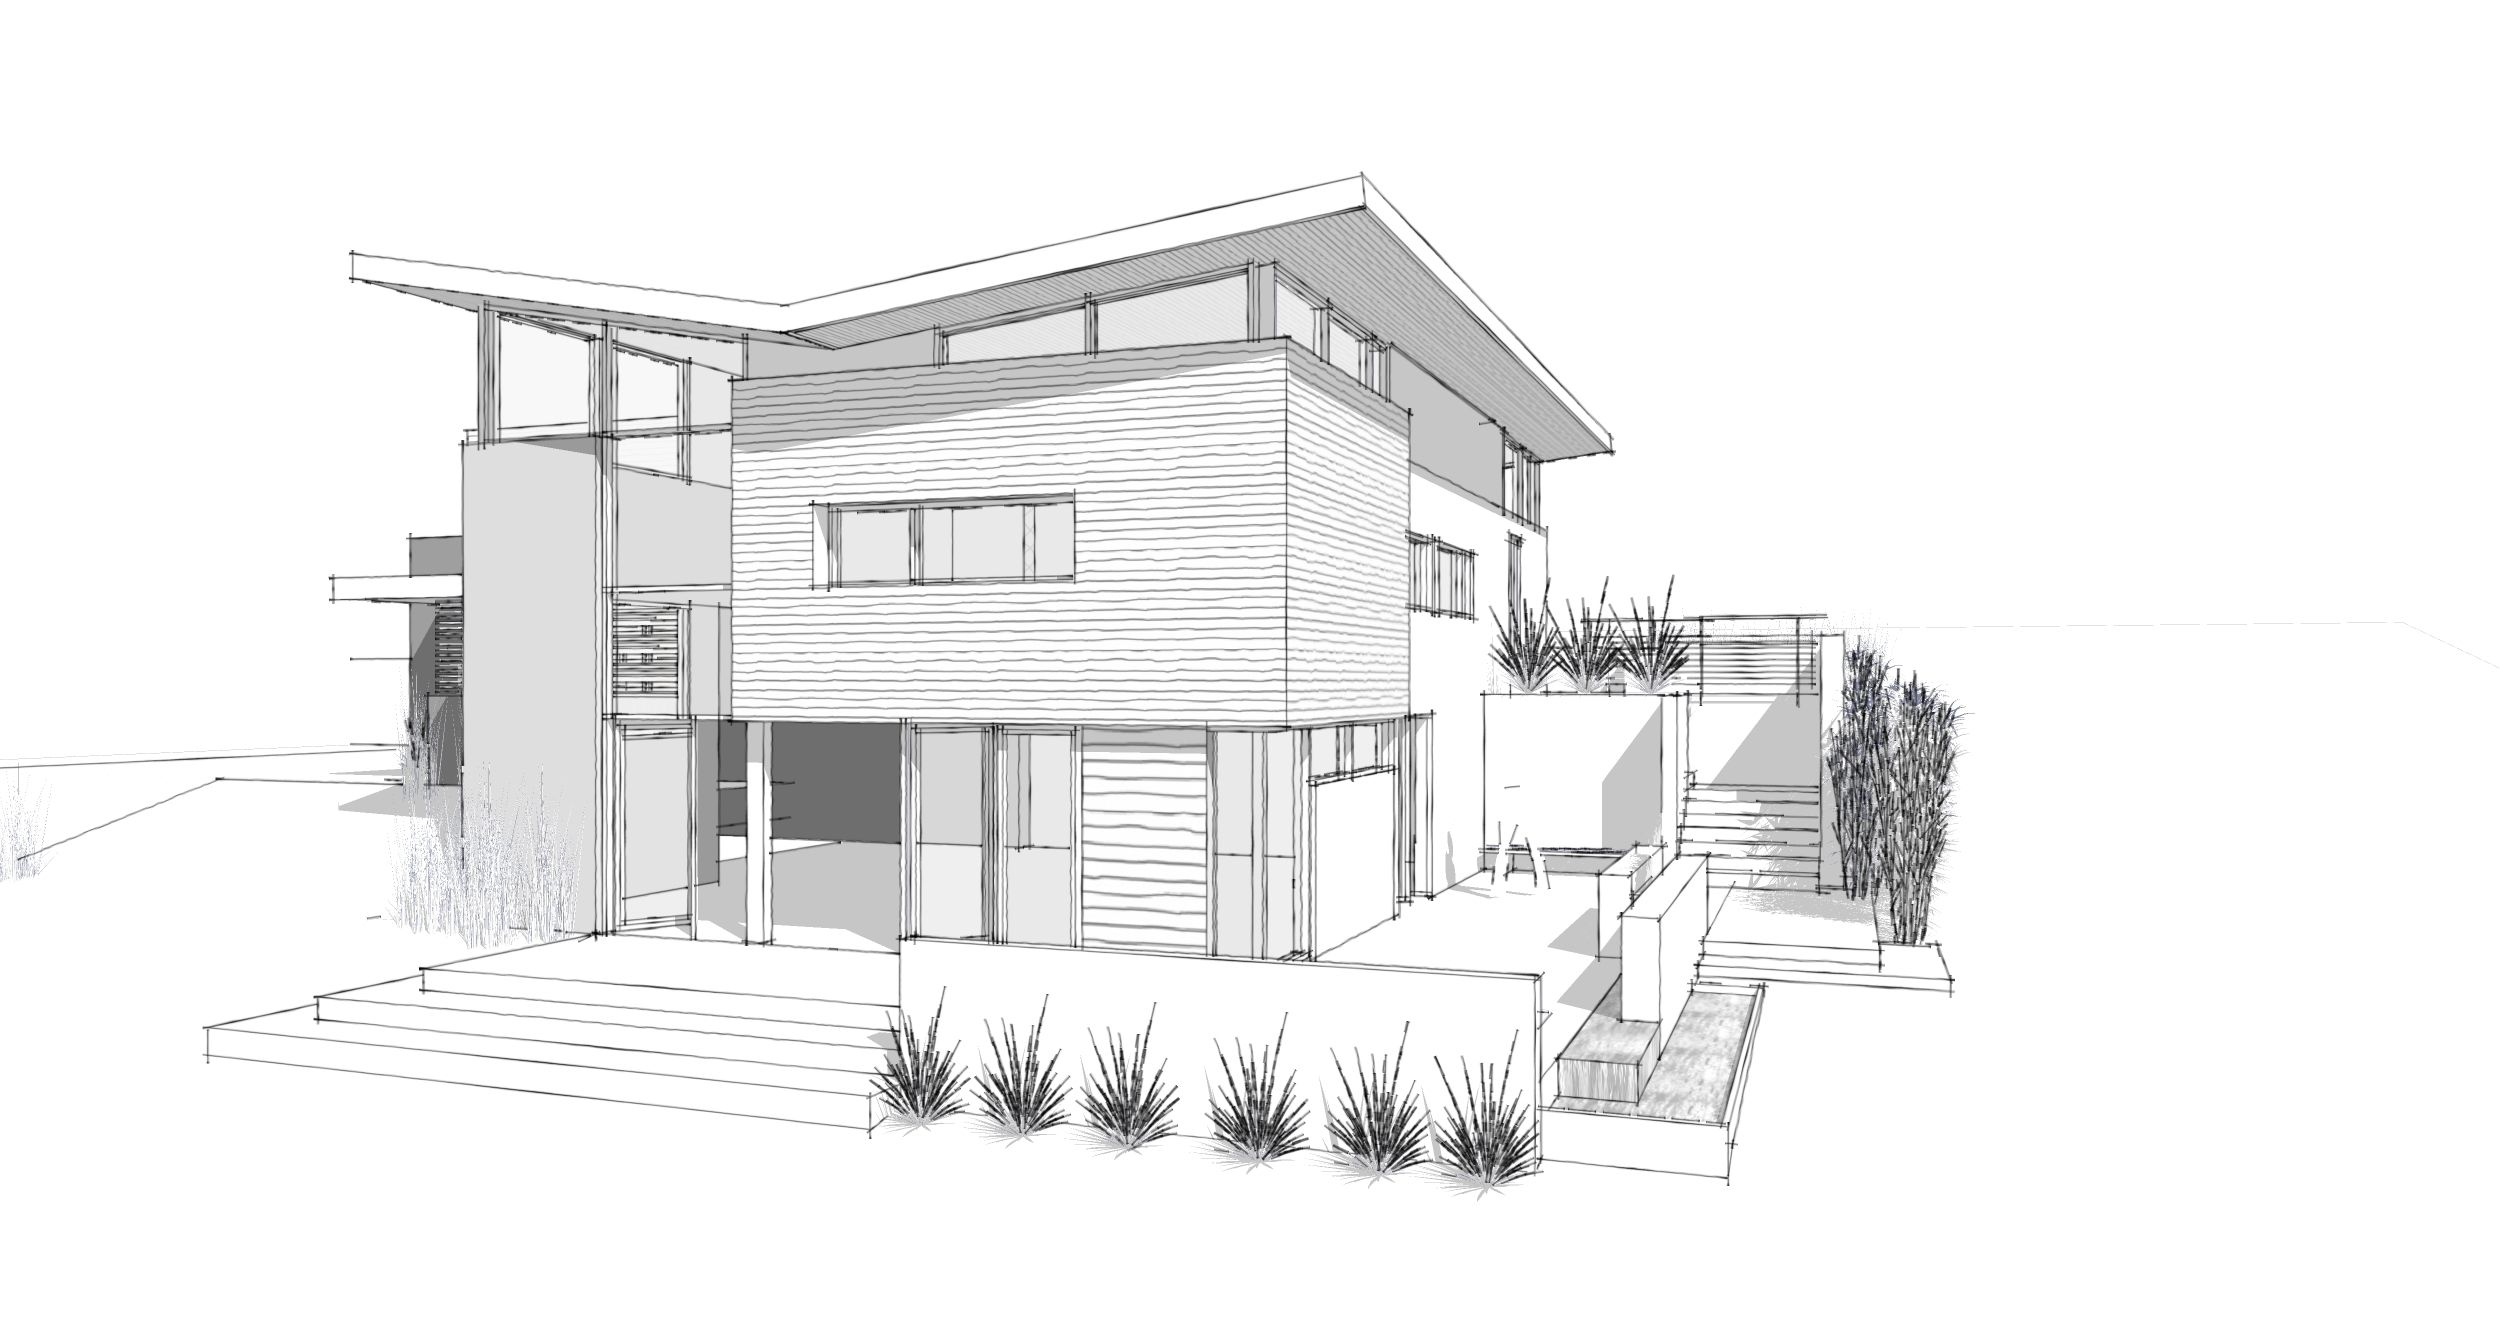 Modern Home Architecture Sketches Design Ideas 13435 Architecture Design Sketch Pinterest